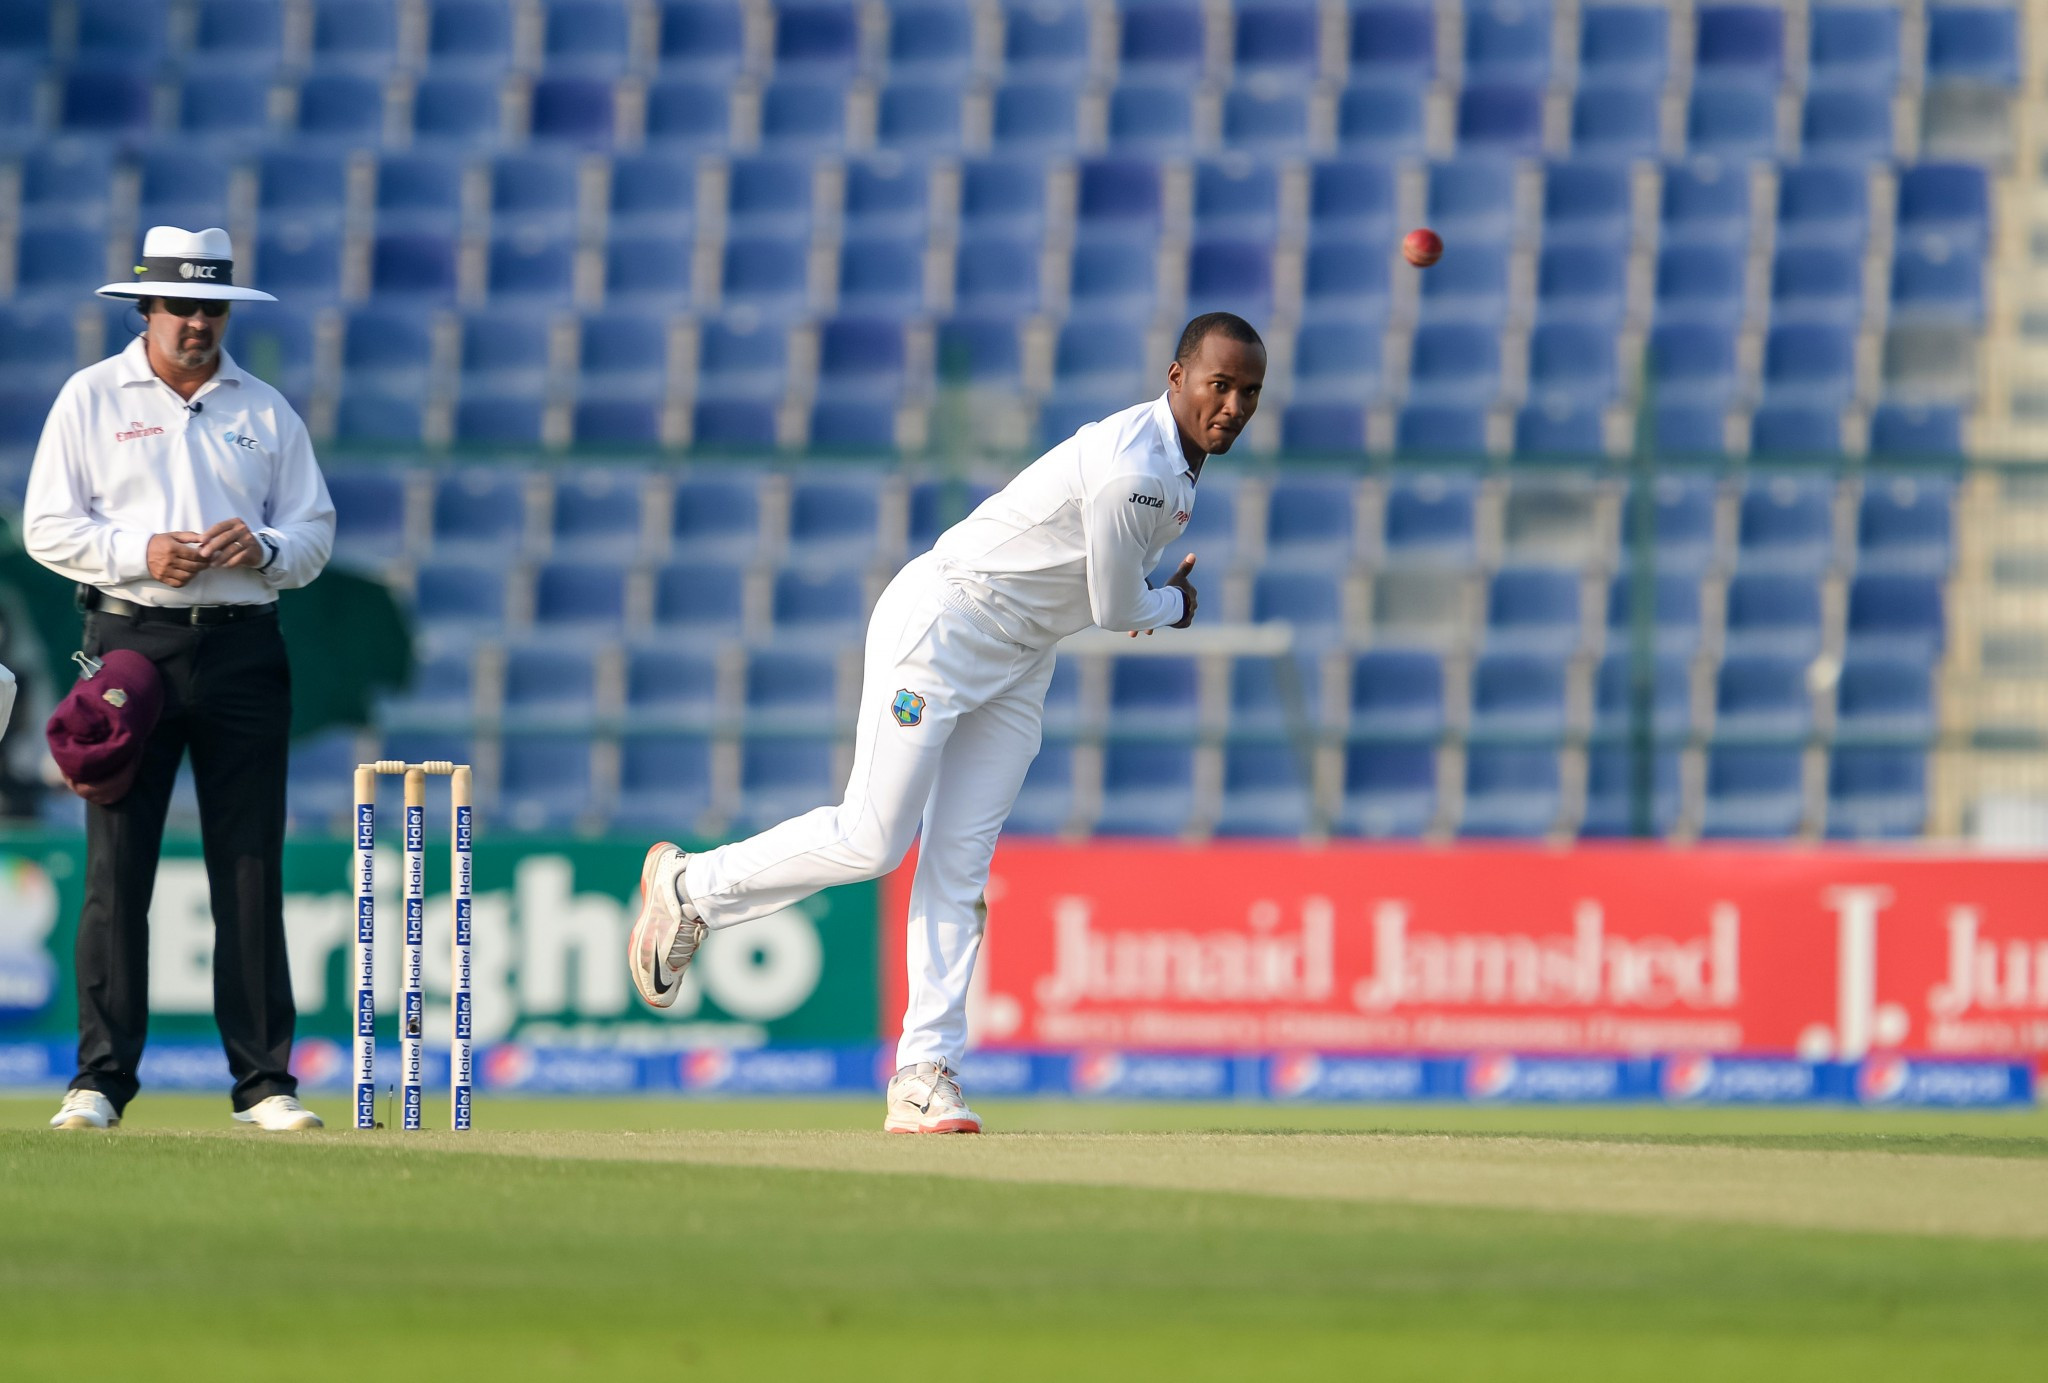 West Indies' Brathwaite reported for suspect action